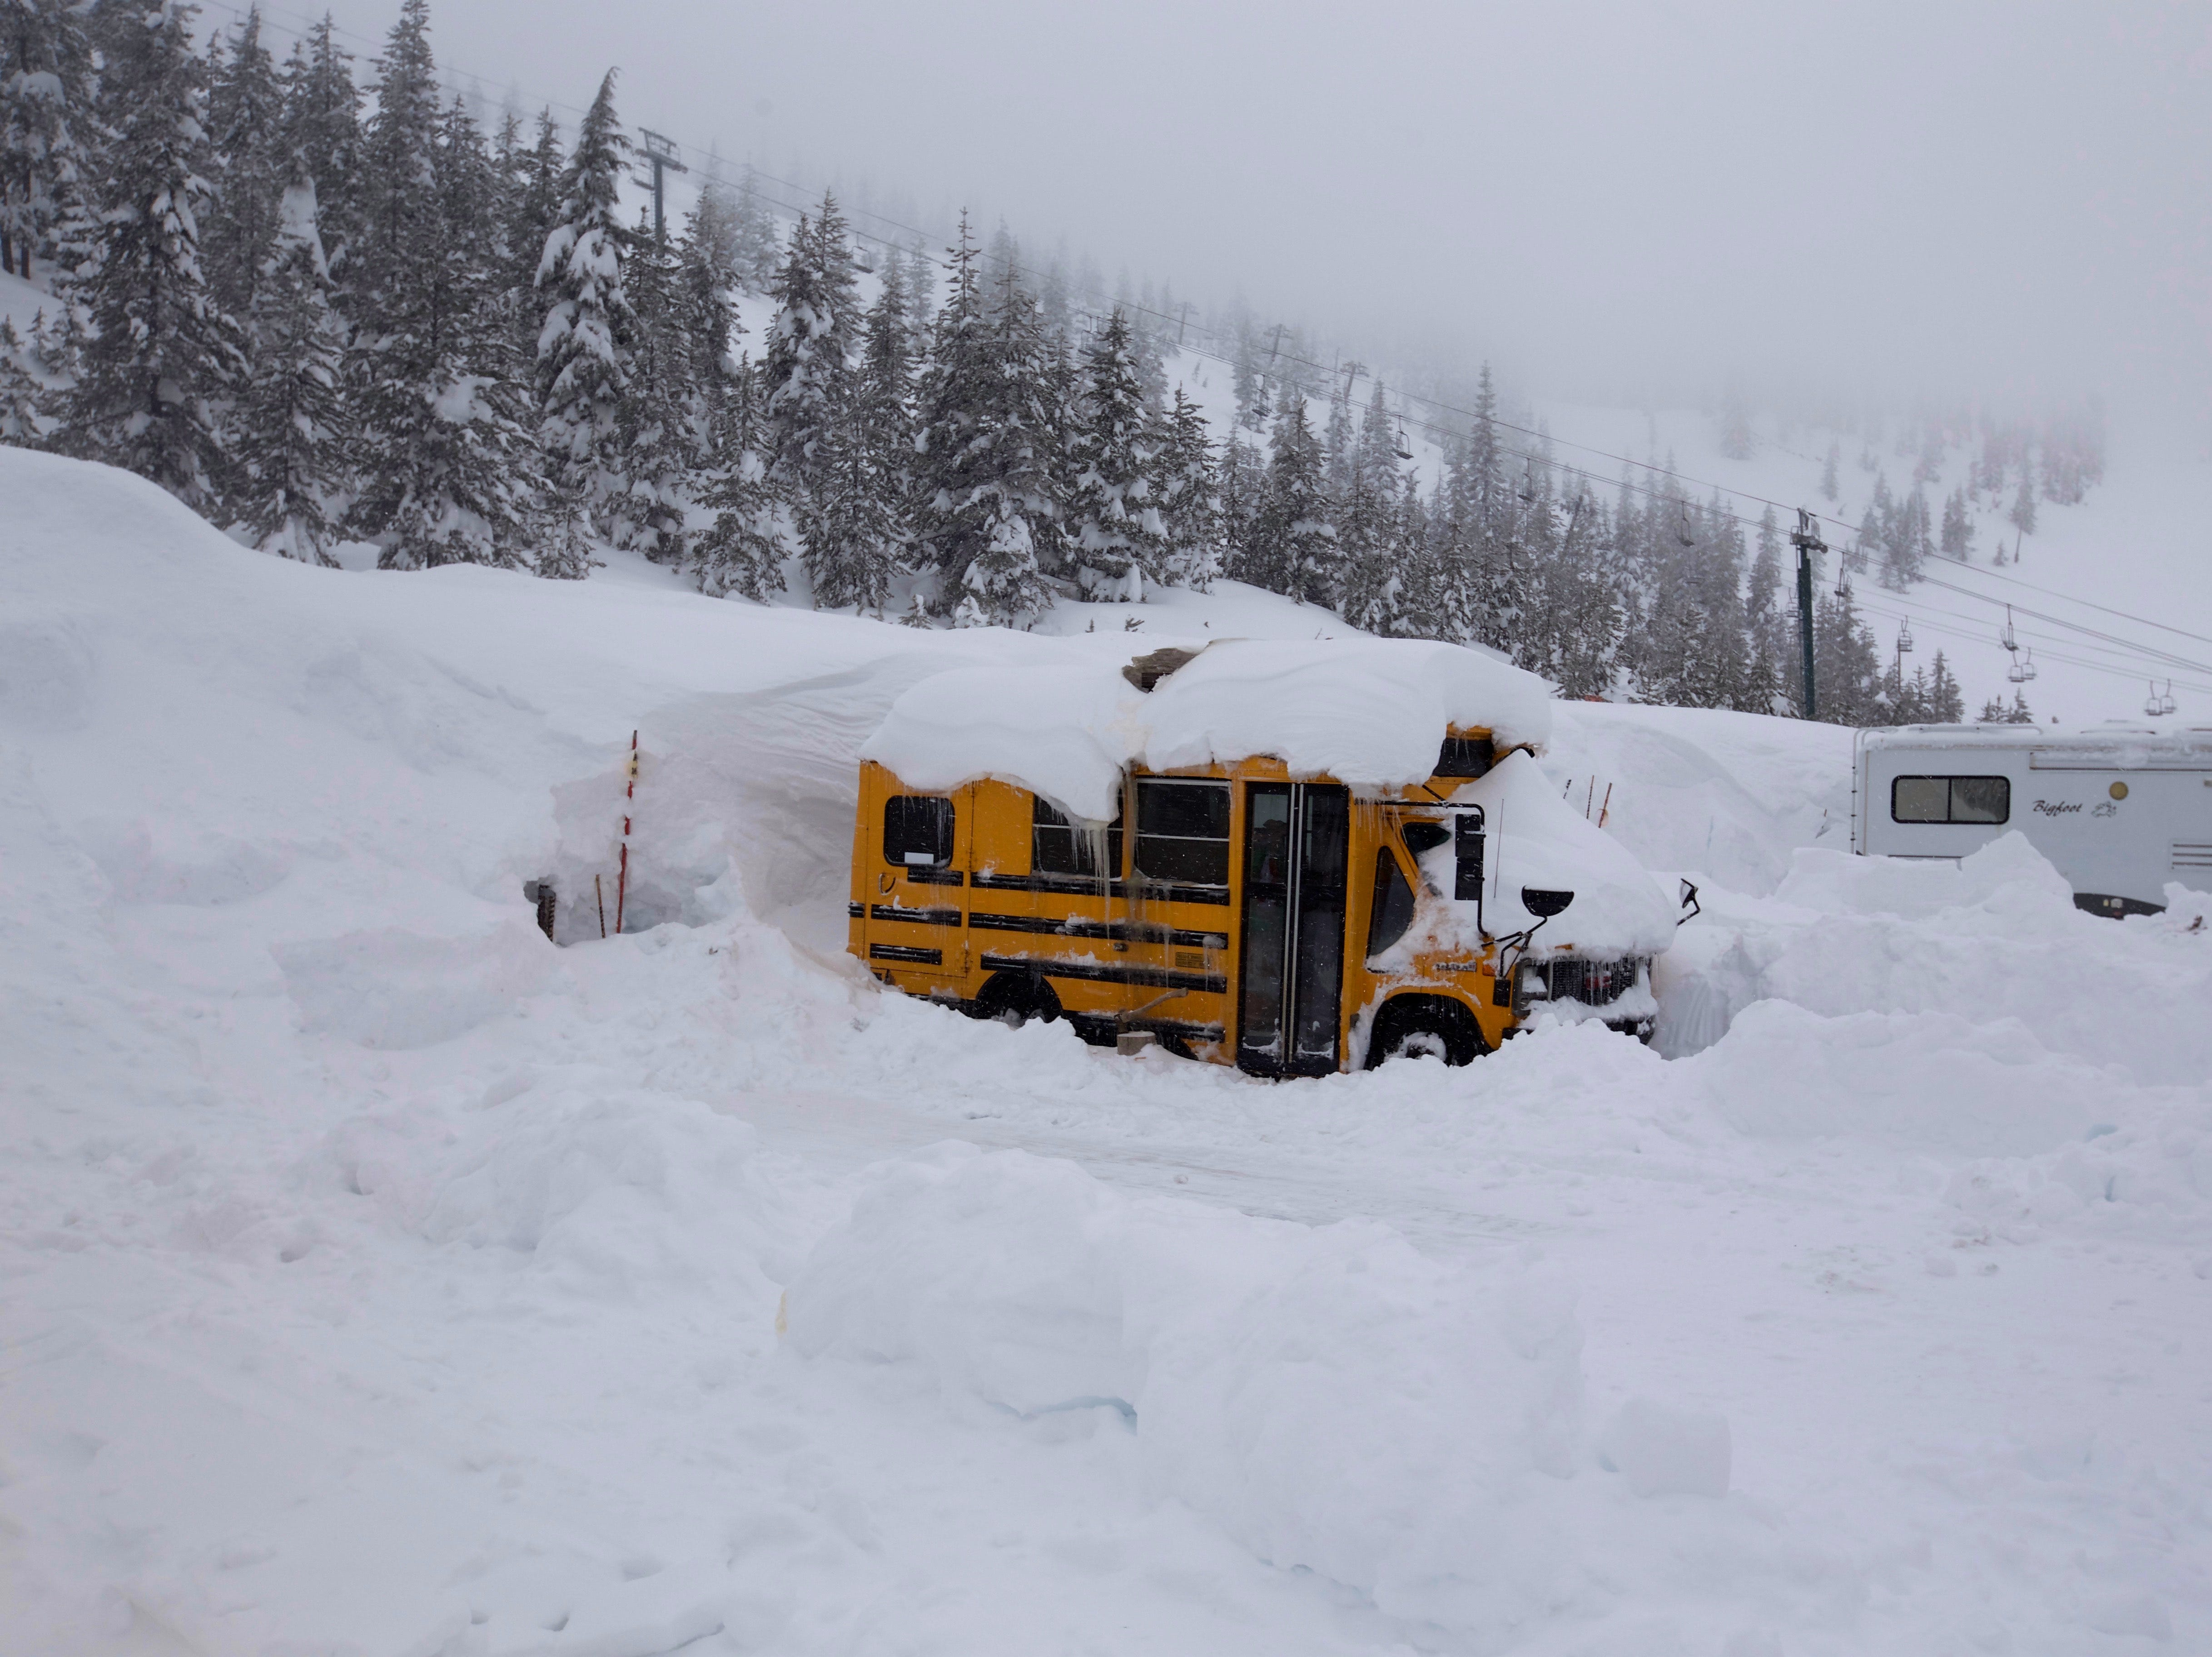 A small schoolbus covered in snow at Hoodoo Ski Area.